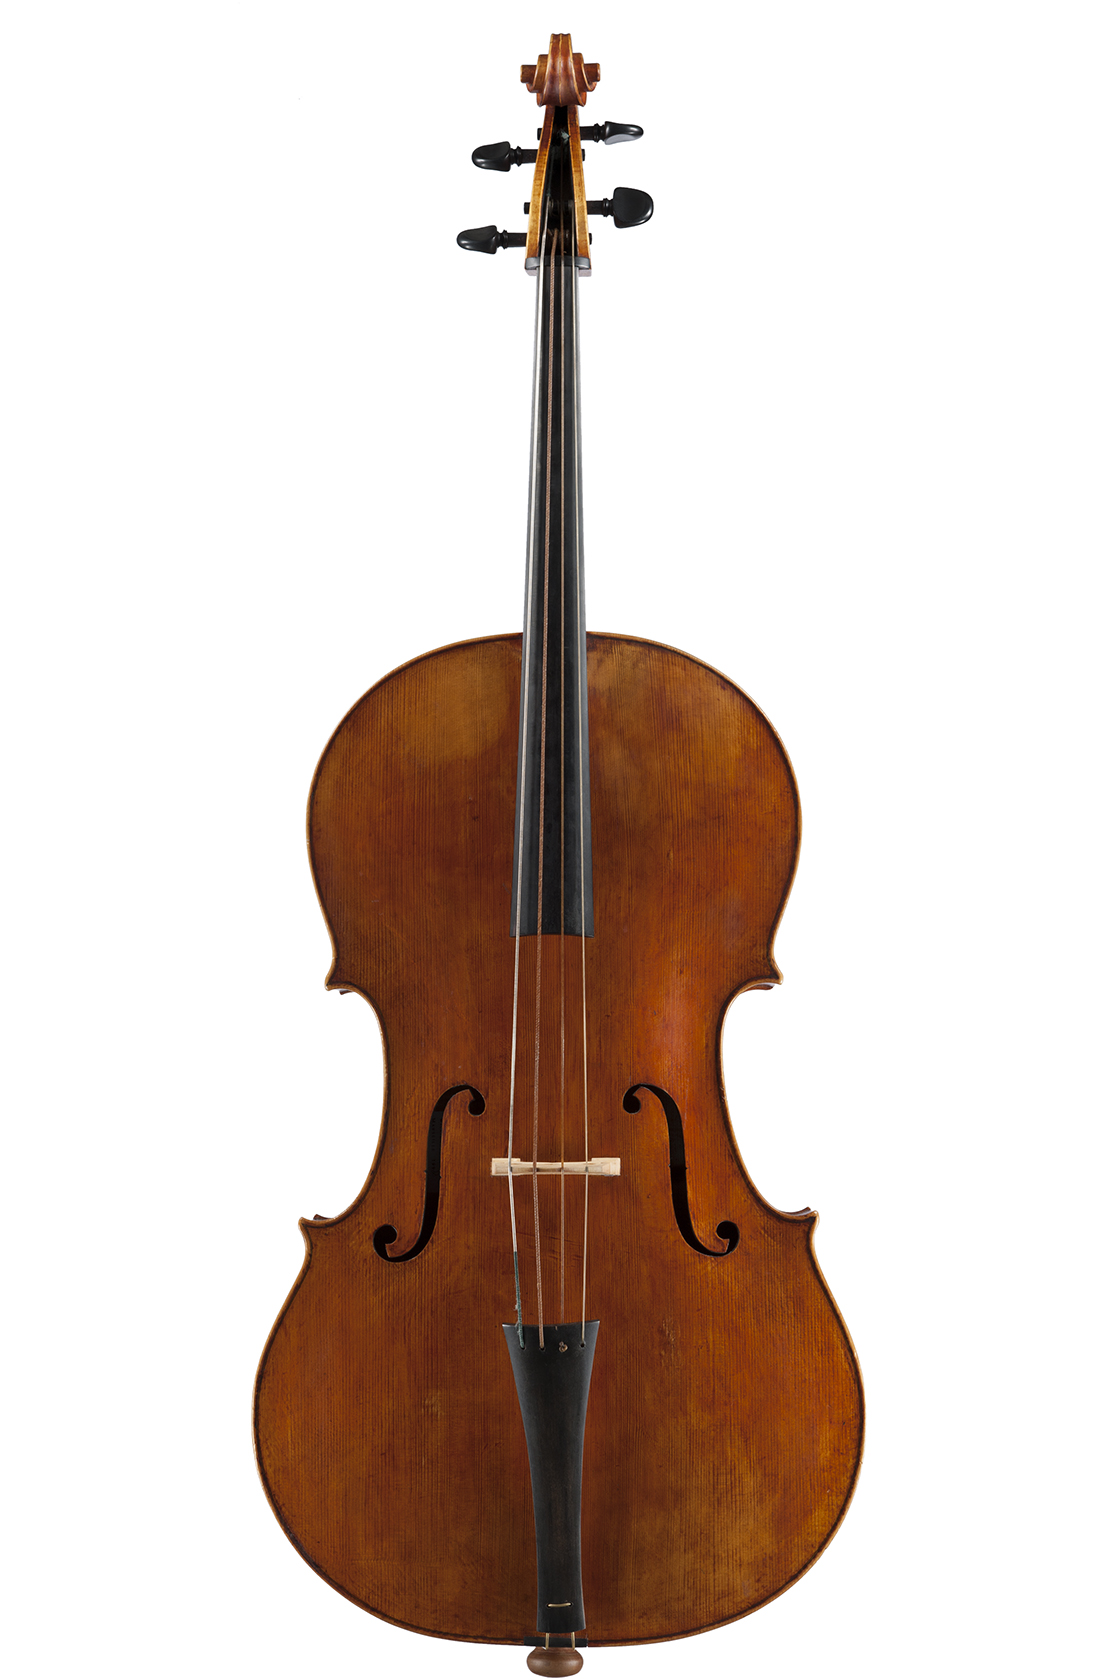 Crijnen-Baroque-'Cello-front-Detmar-Leertouwer-Dominus-Maris-Music-Productions.jpg